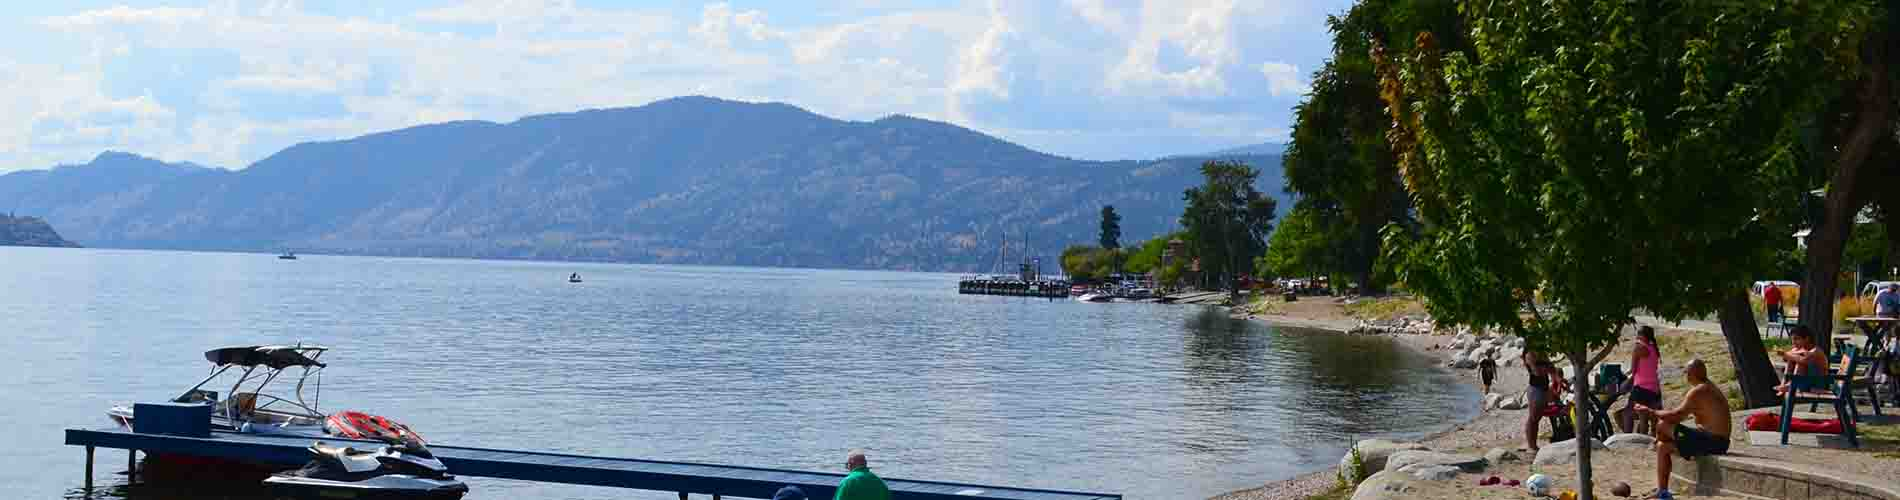 view okanagan lake peachland bc